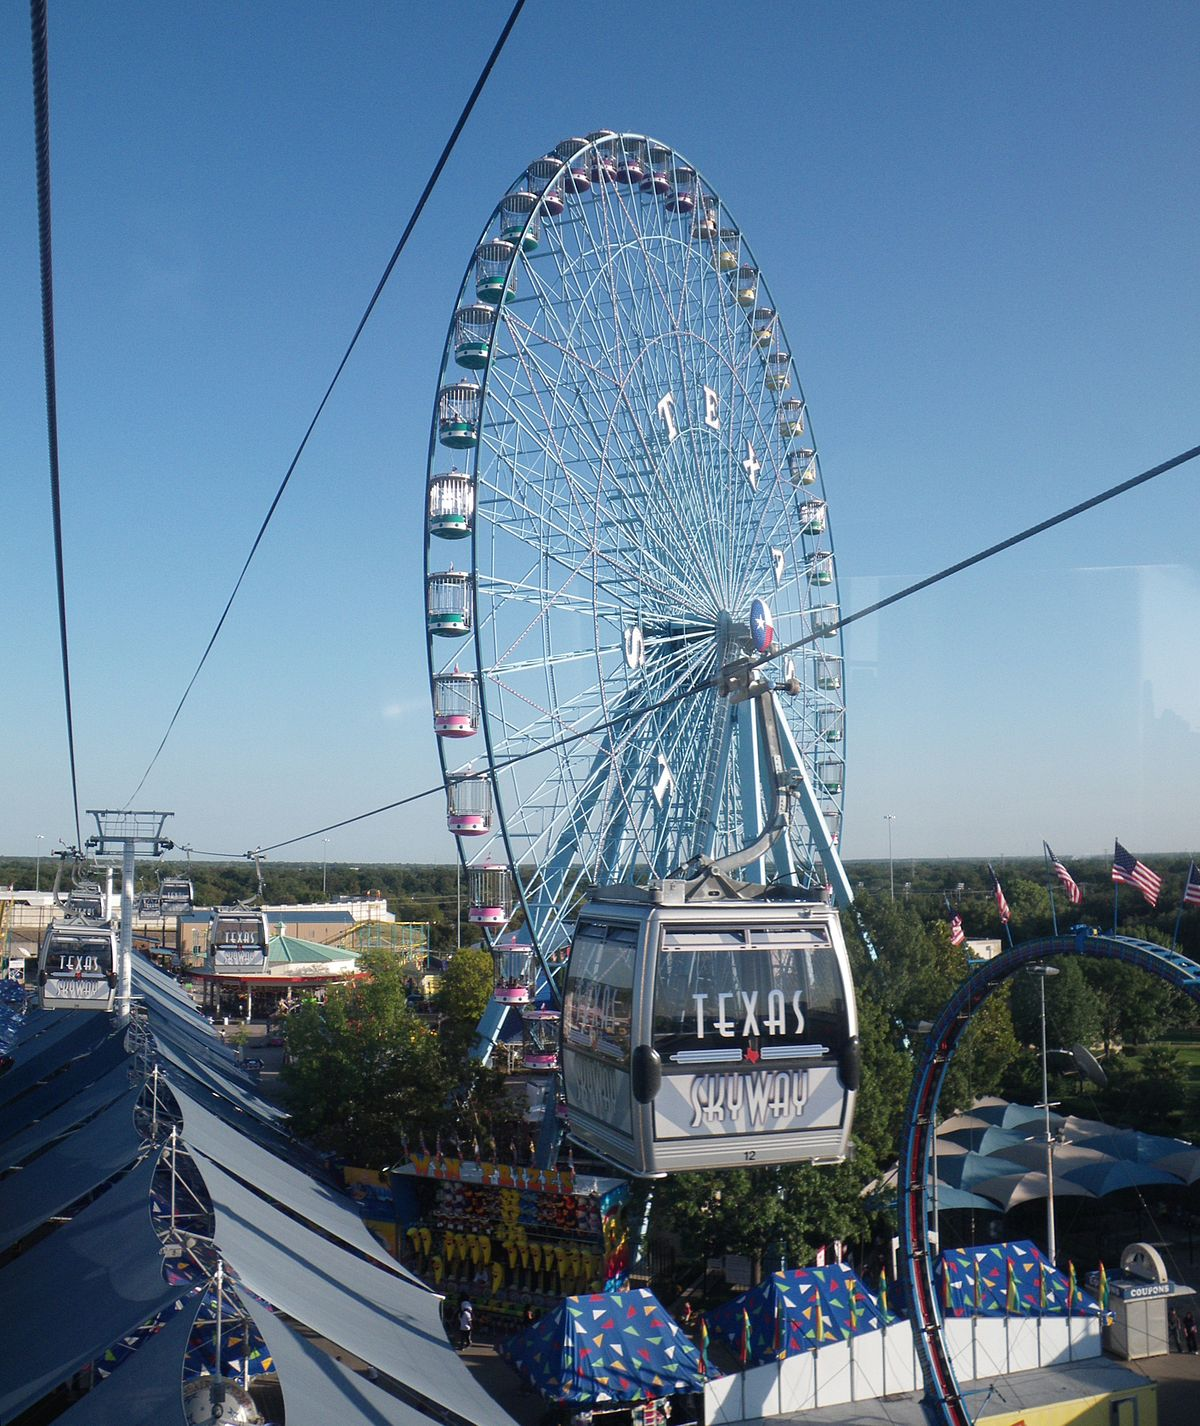 State Fair of Texas - Wikipedia